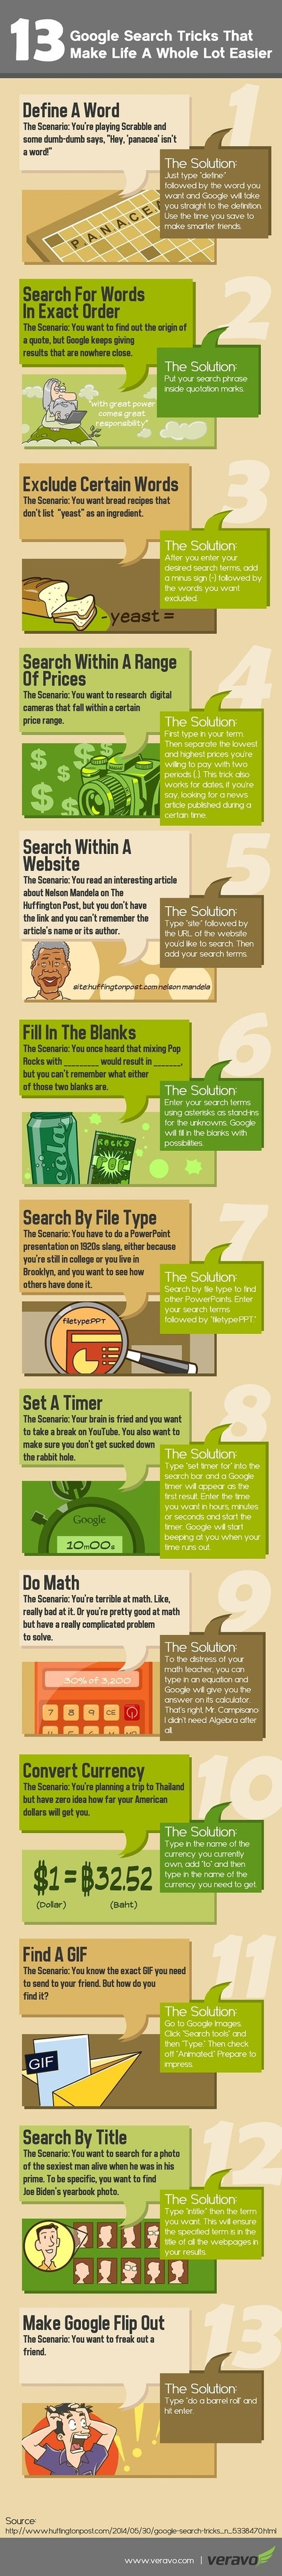 Google Search Tricks Infographic - e-Learning Infographics | davidchiquero | Scoop.it